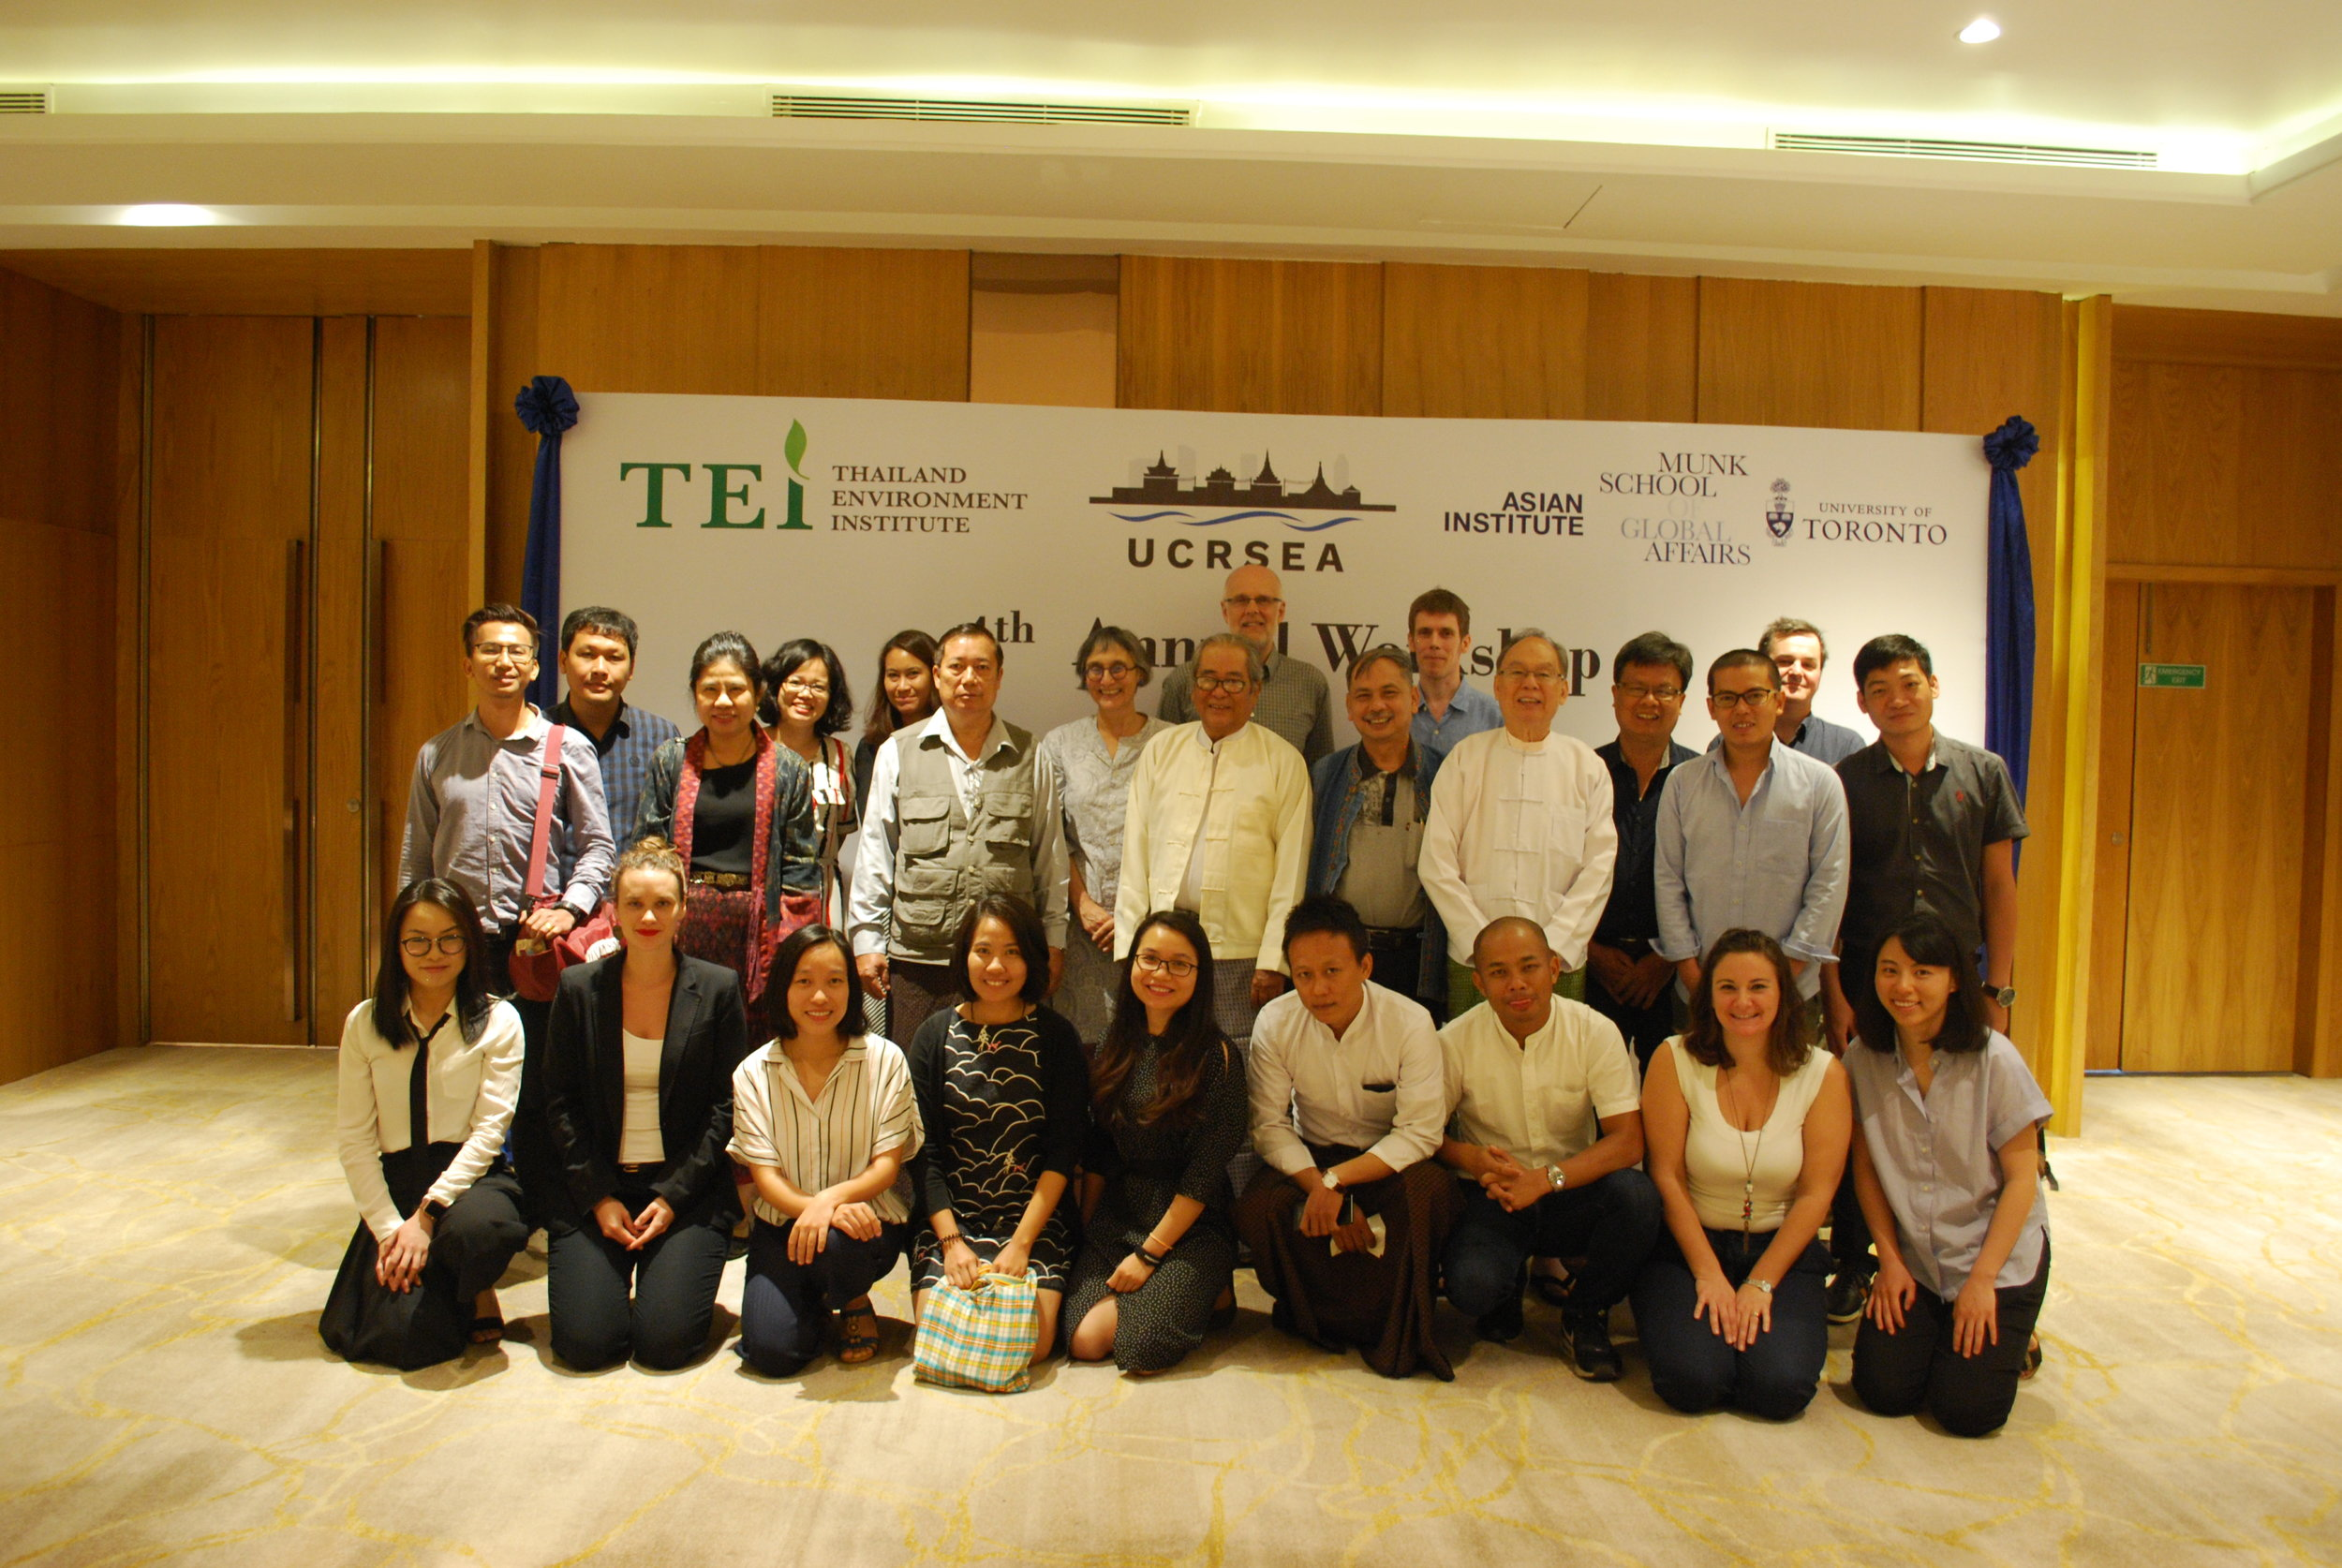 Participants of the Annual Workshop